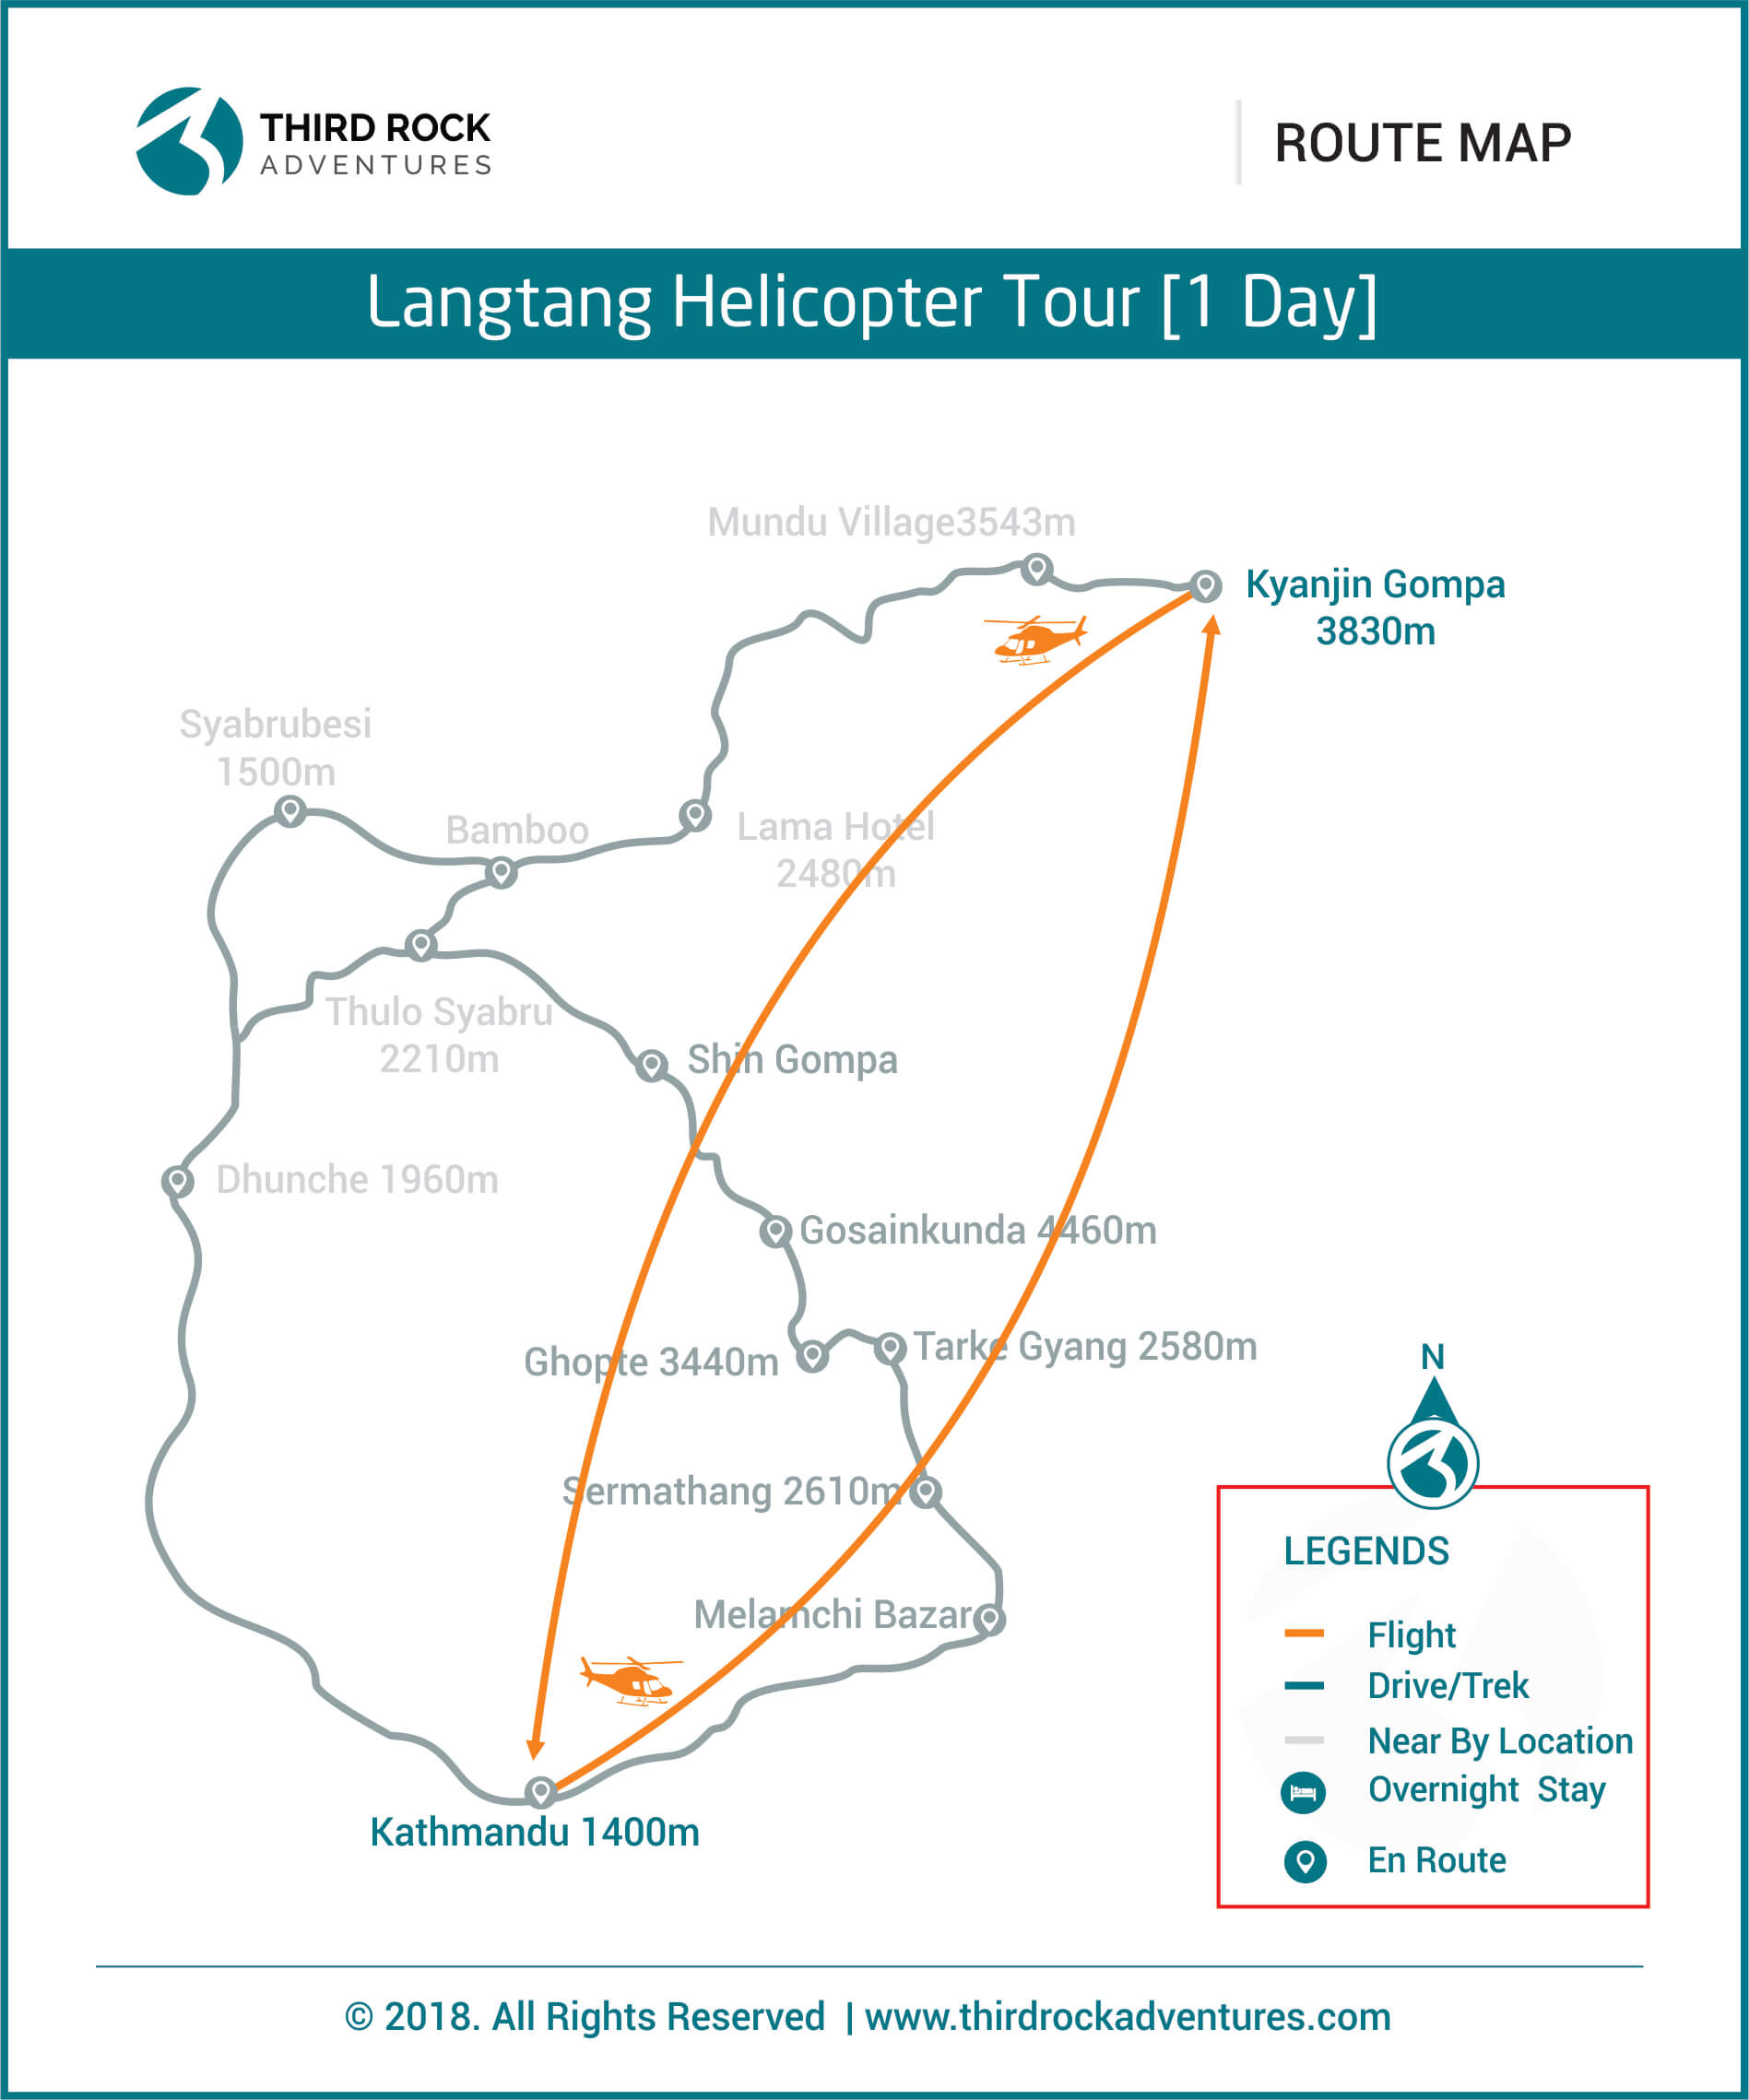 Langtang Helicopter Tour 1 day Route Map